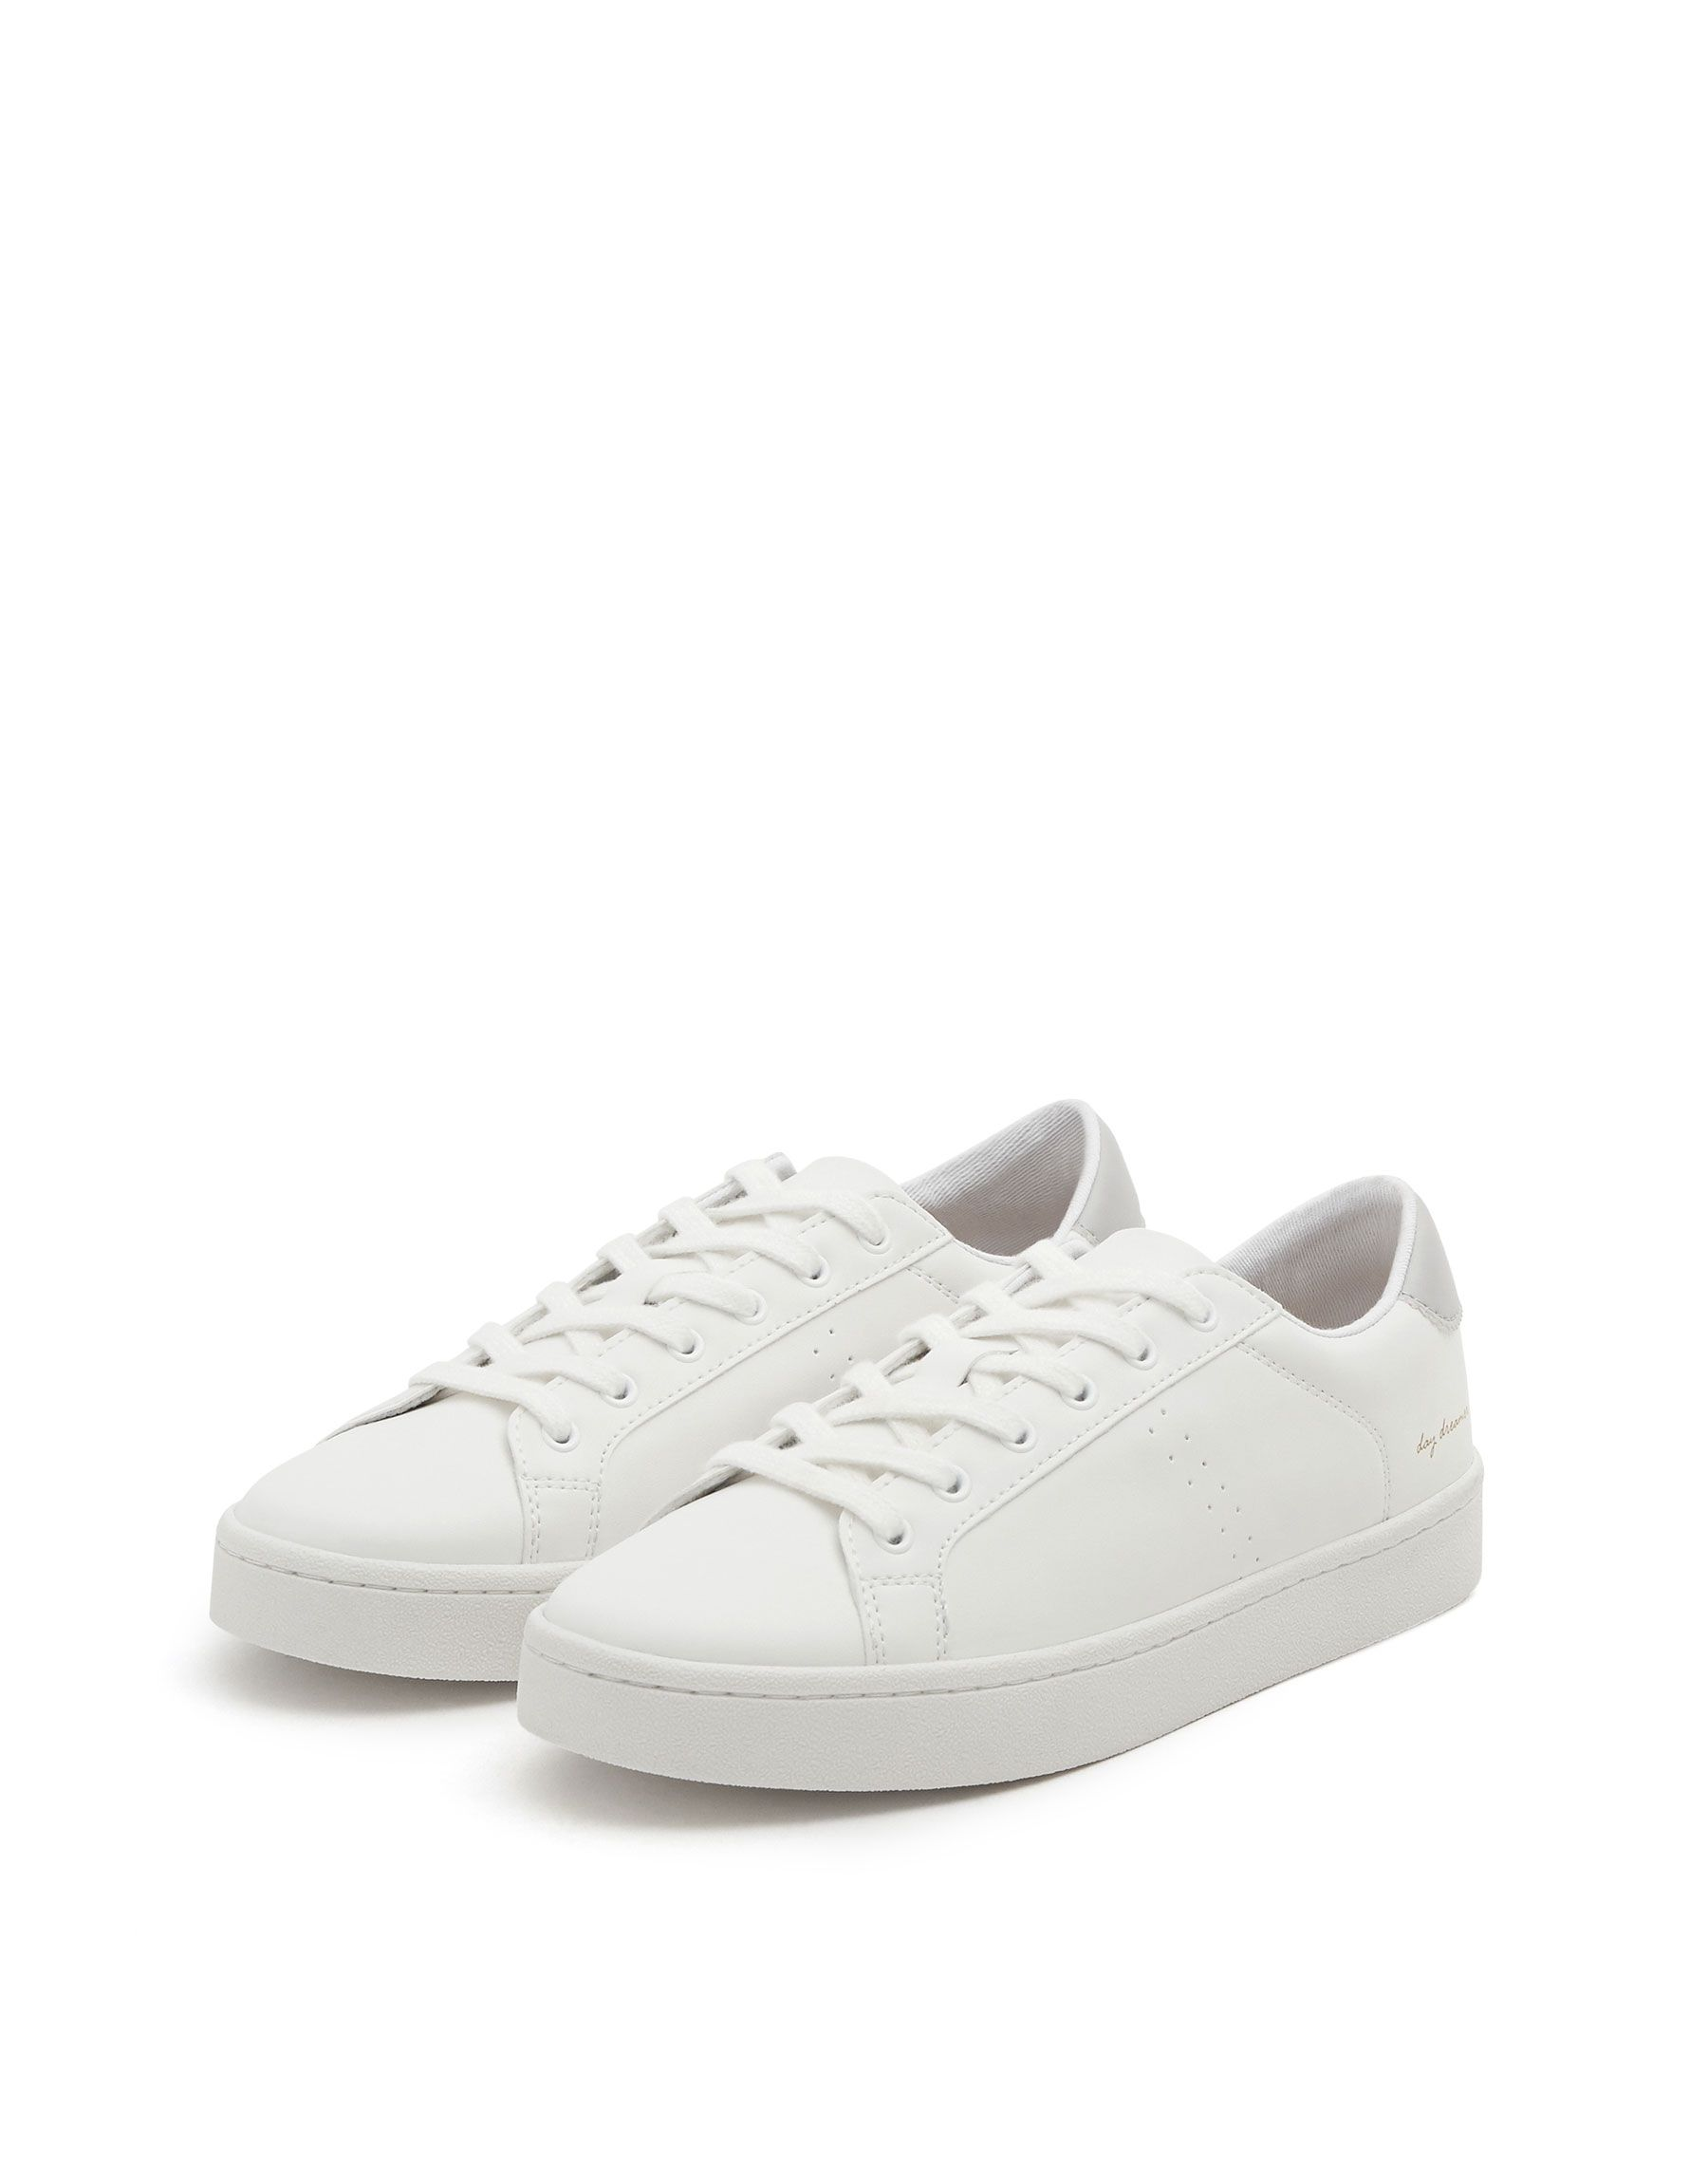 Urban Sneakers Trainers Shoes Woman Pull Bear United Kingdom